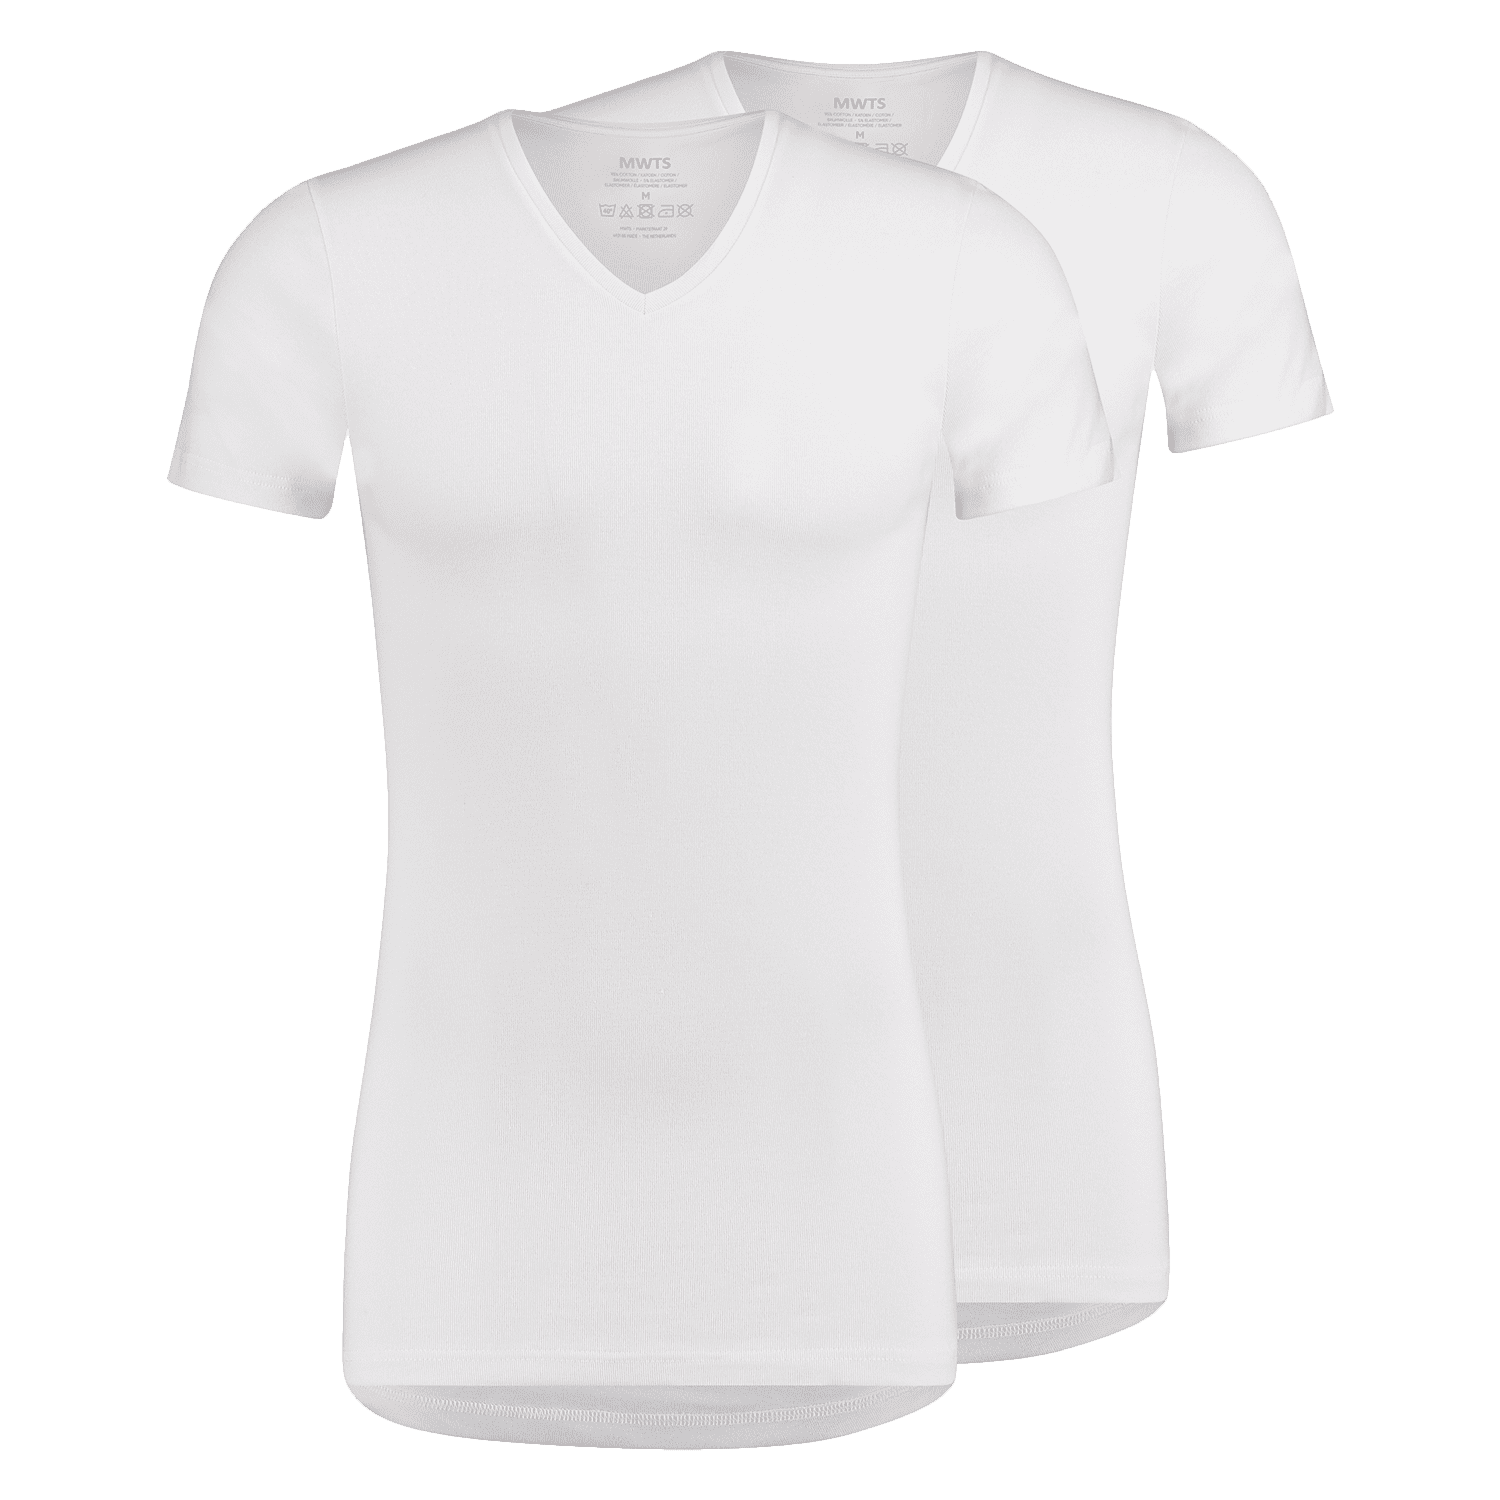 T-shirt V-neck prominent front